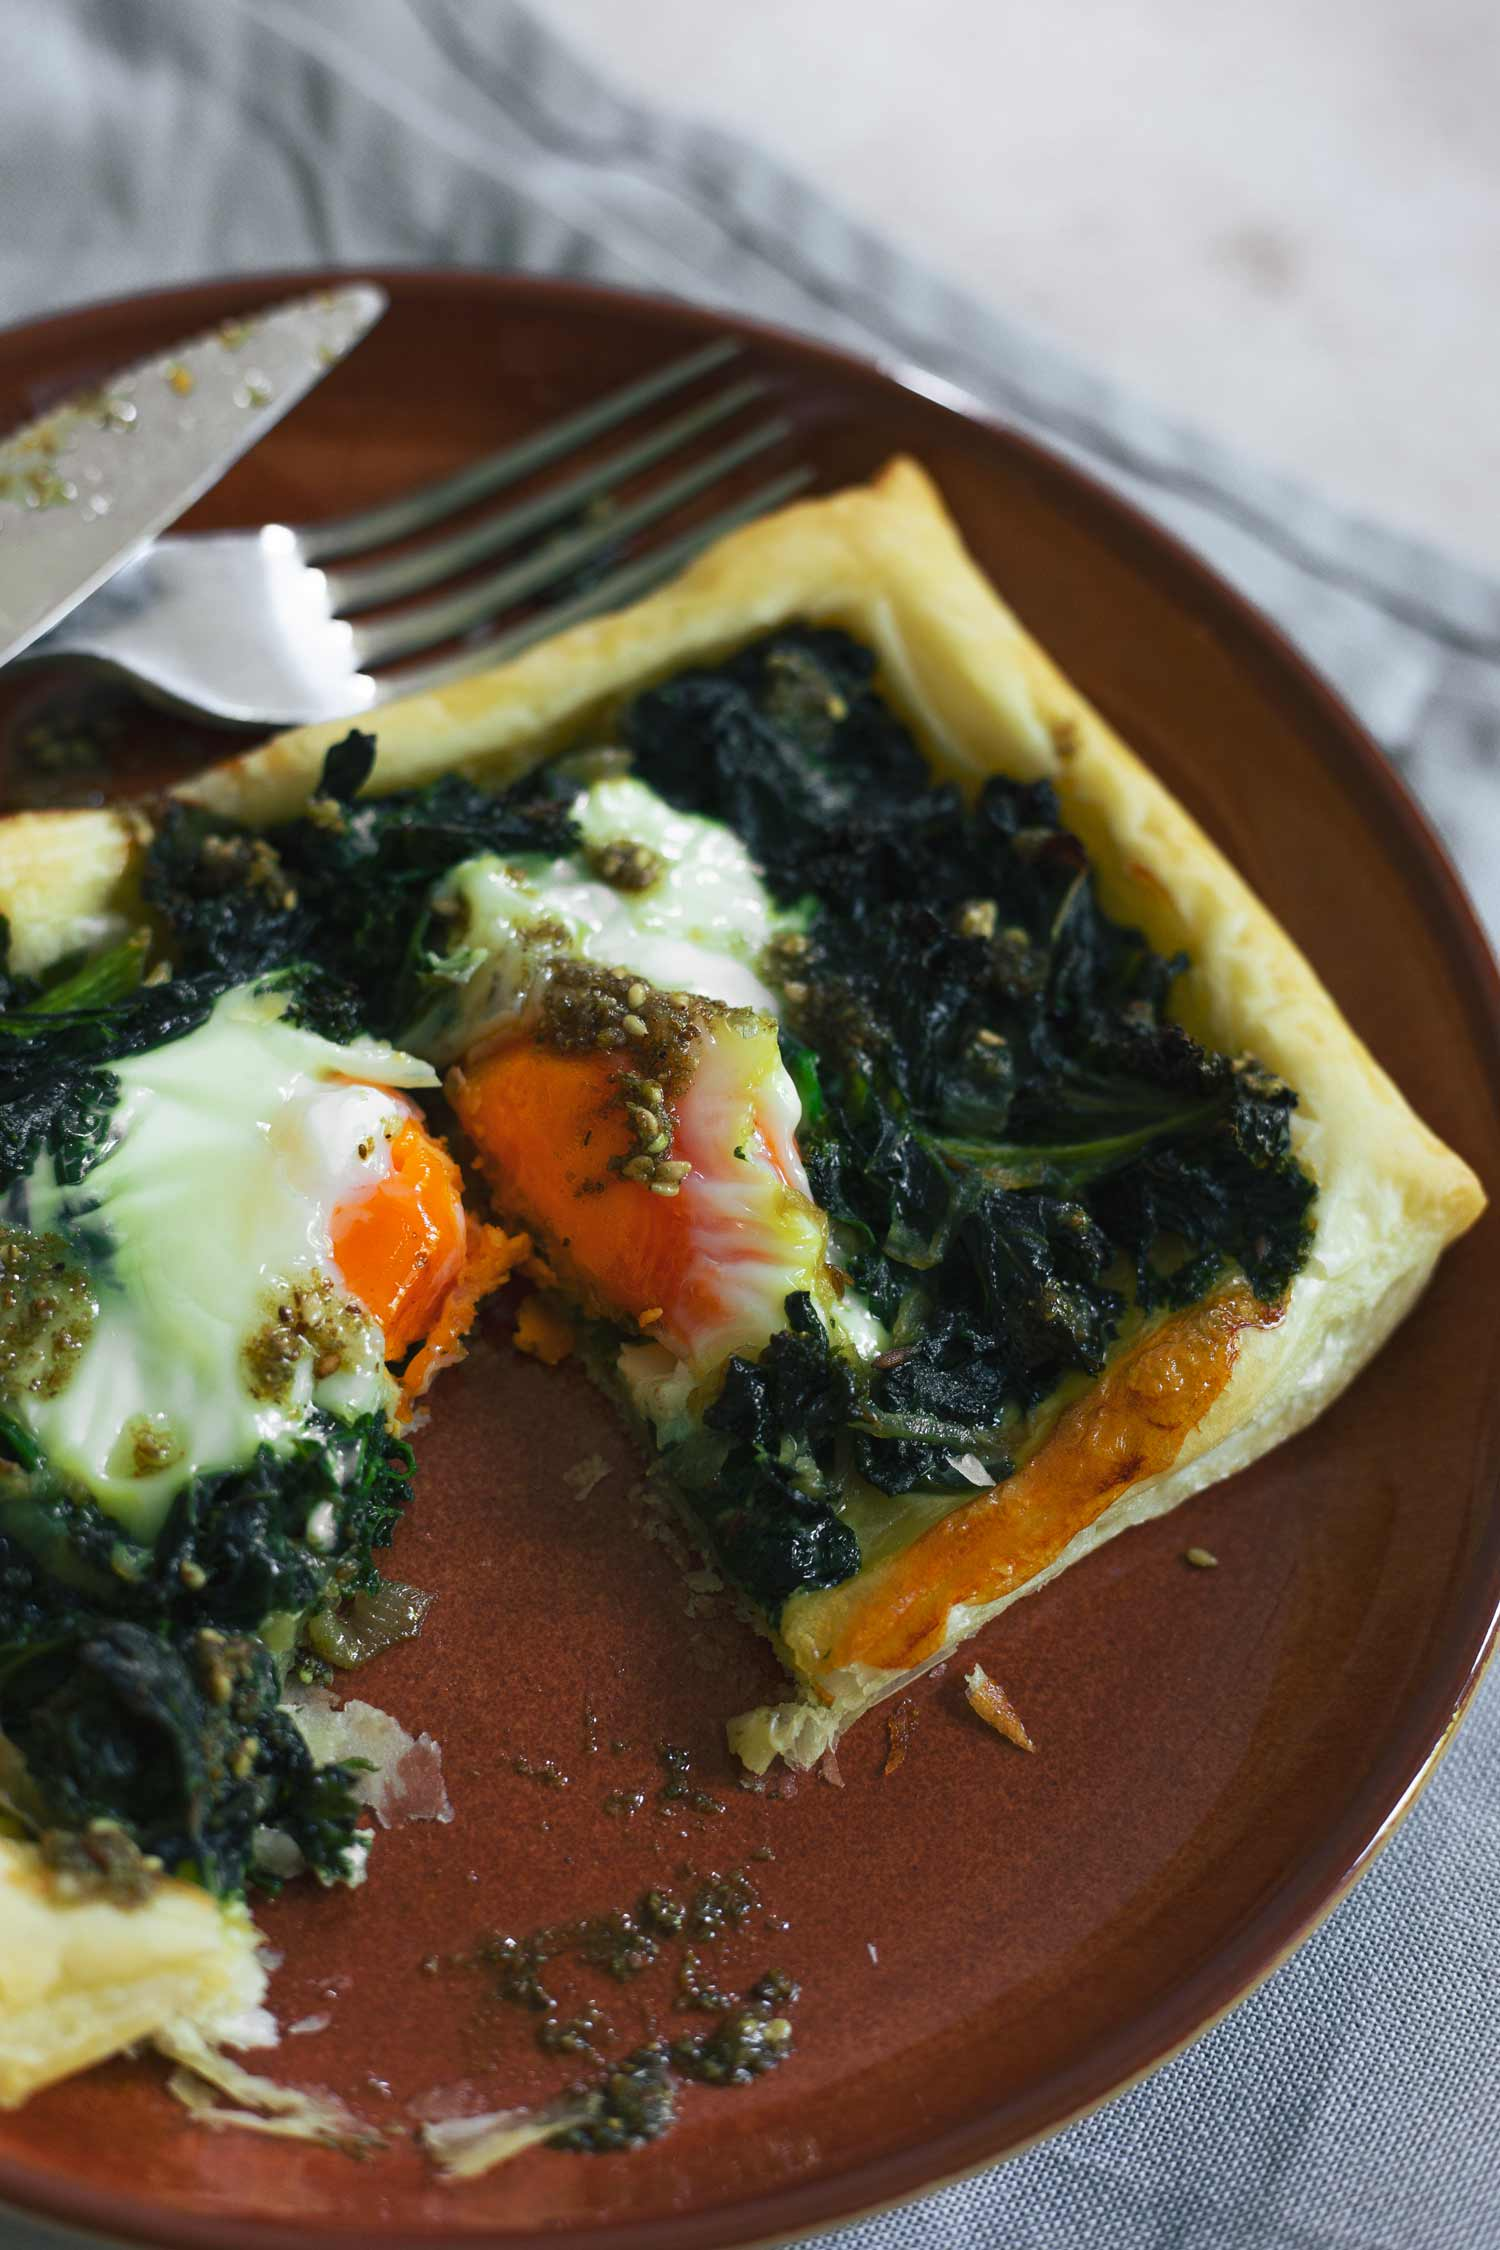 A pastry tart with greens and eggs cut in half